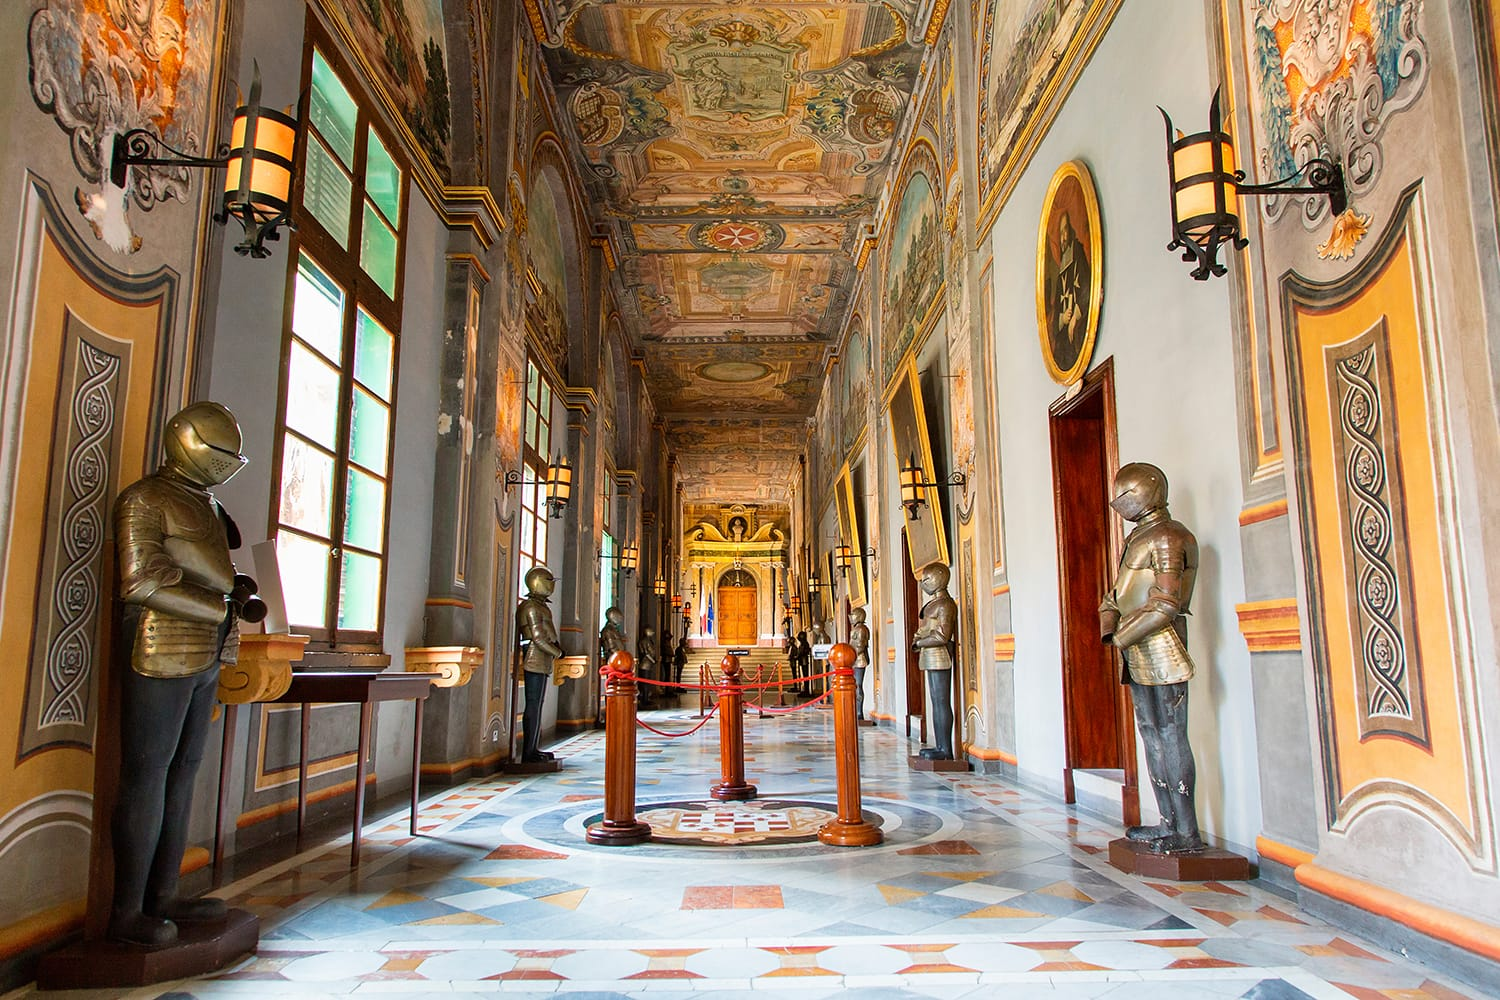 Interior of the Grandmaster's Palace in Valletta, Malta